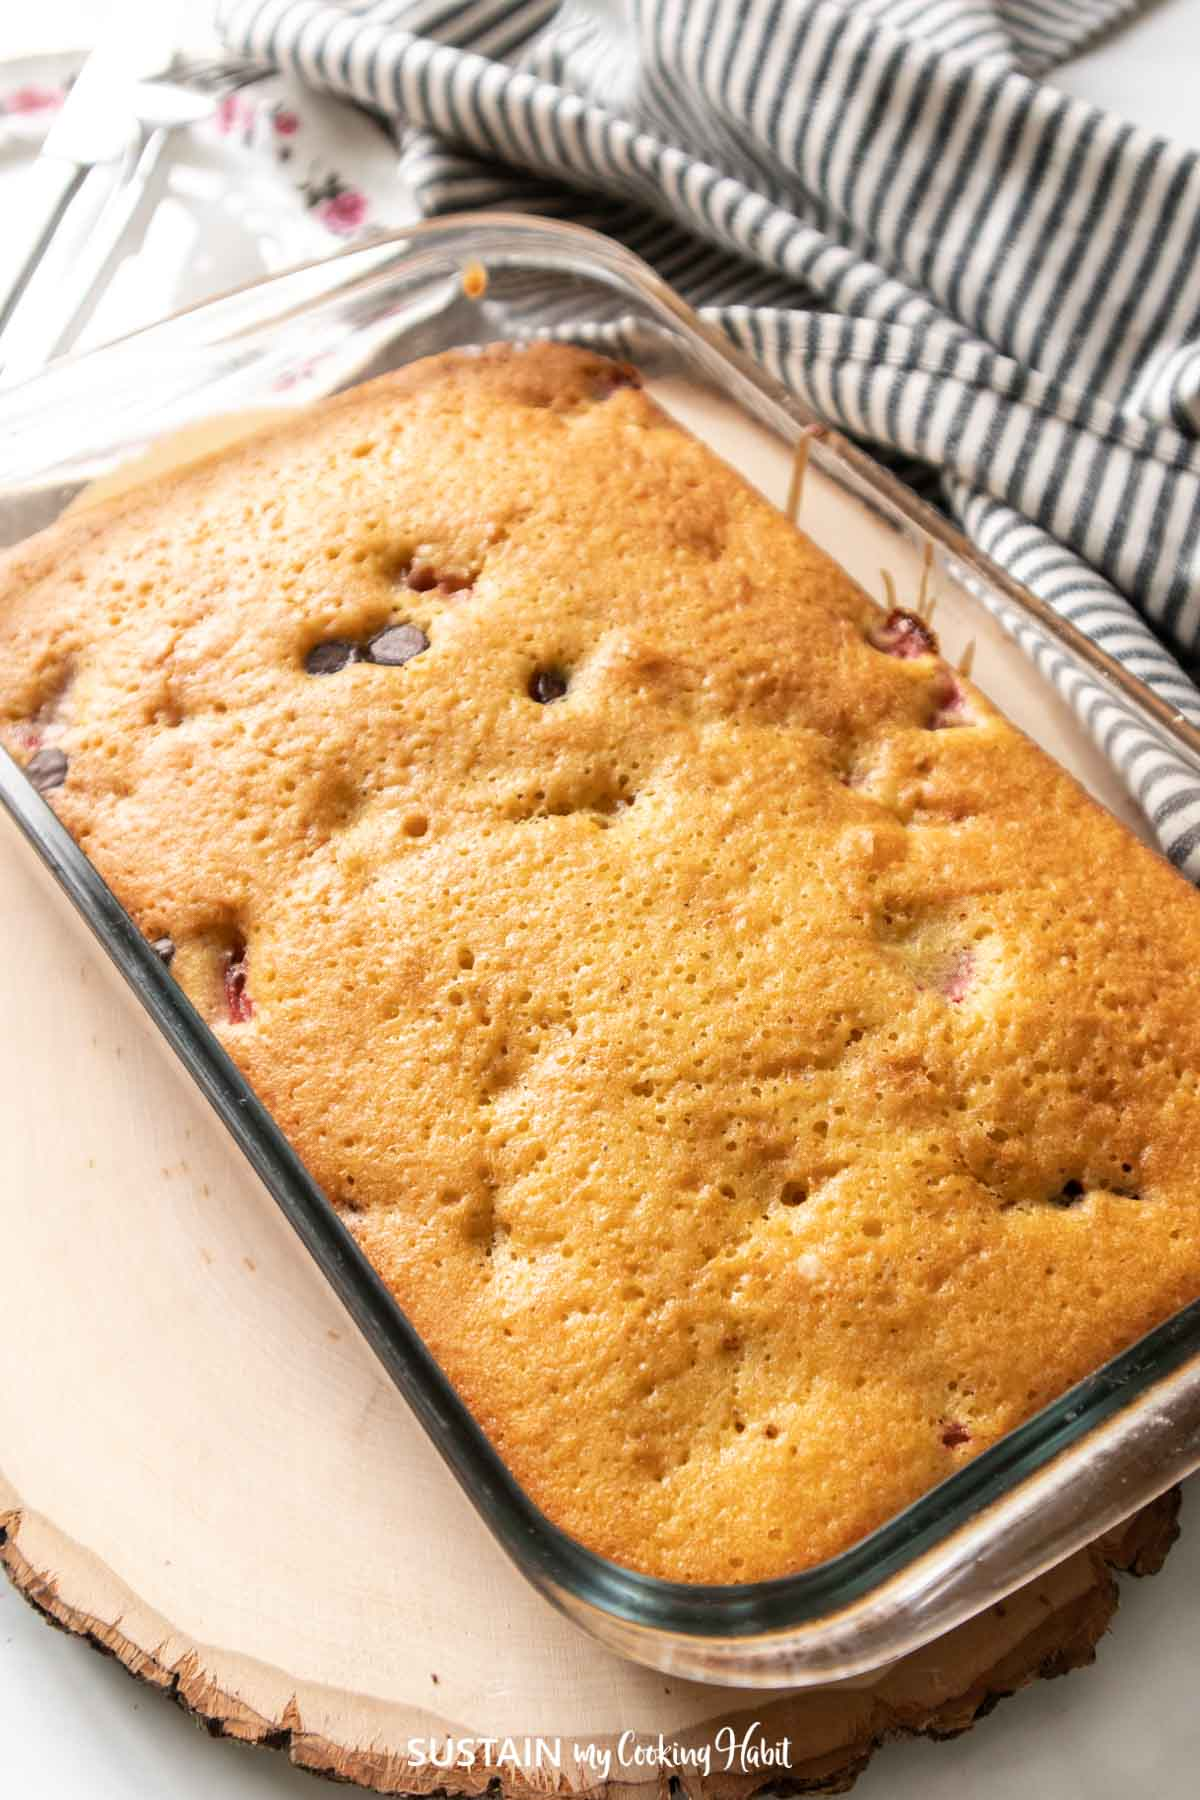 Strawberry sponge cake with chocolate chips in a clear pan.